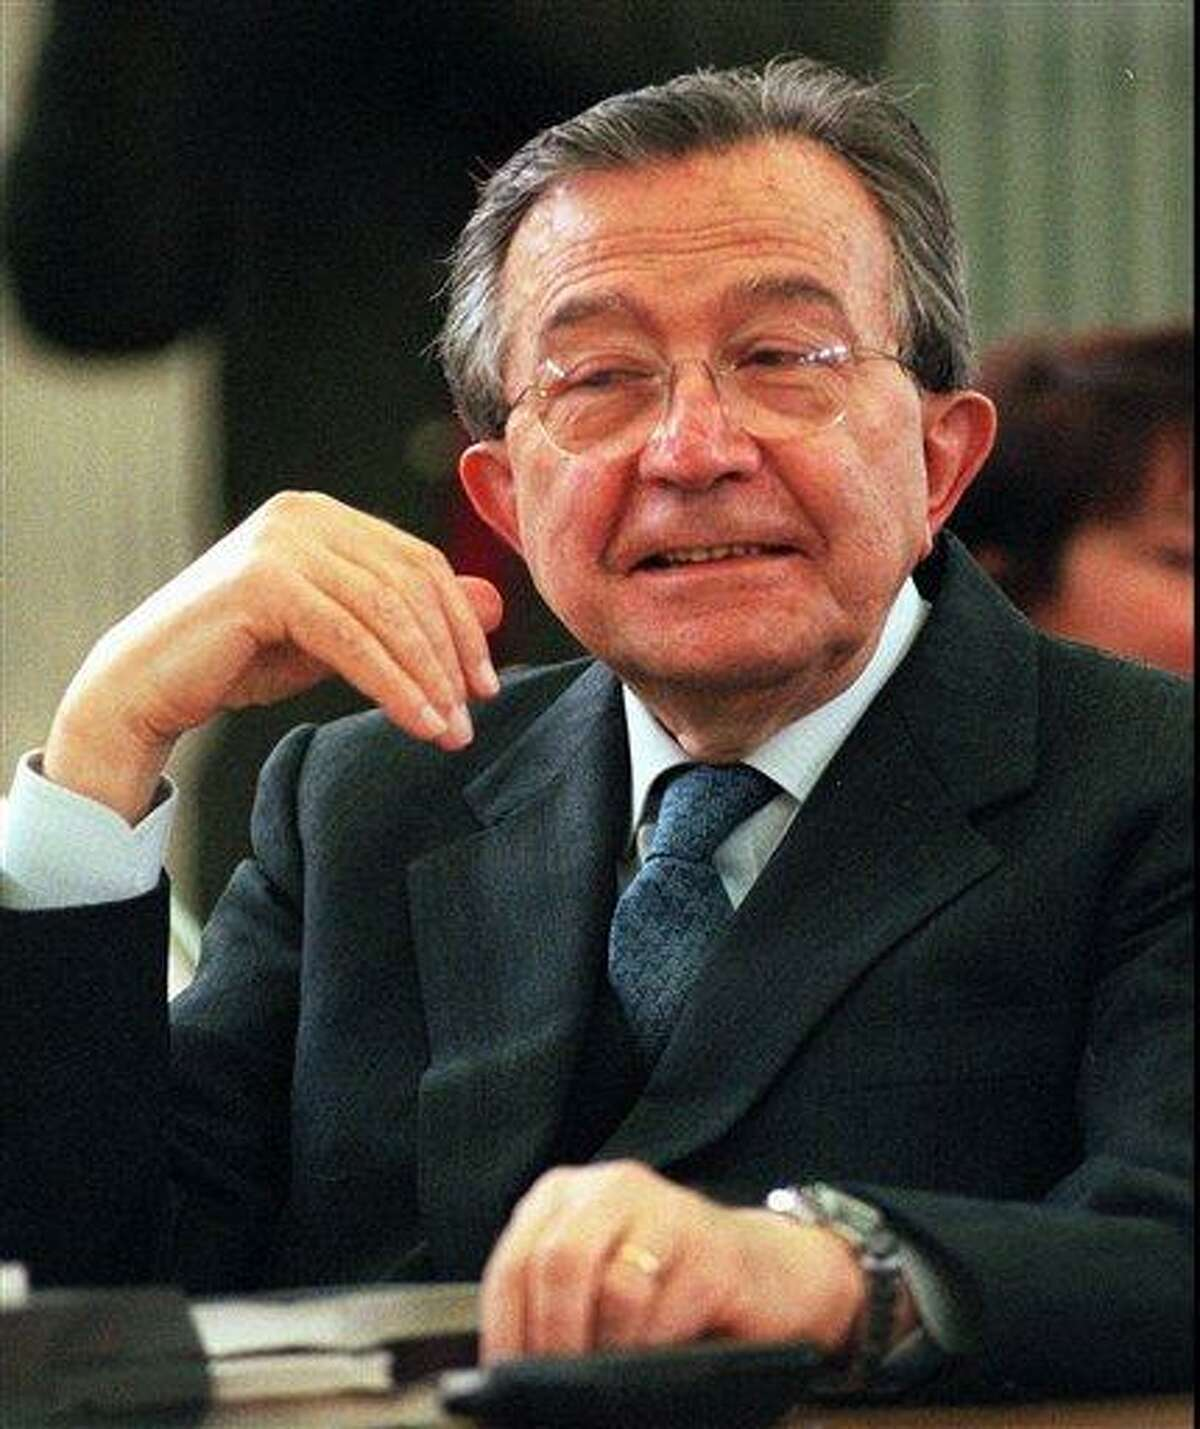 OBIT - In this Friday, Dec. 15, 1995 file photo, former Premier Giulio Andreotti reacts to a question, as he attends a court hearing of his trial, temporarily moved to Rome from Palermo. Italian state television said Monday, May 6, 2013, that Giulio Andreotti, Italy's former seven-time premier, has died at age 94. At his prime, Andreotti was one of Italy's most powerful men: he helped draft the country's constitution after World War II, sat in parliament for 60 years and served as premier seven times. Andreotti was hospitalized last year with heart problems stemming from a respiratory infection. (AP Photo/Massimo Sambucetti)